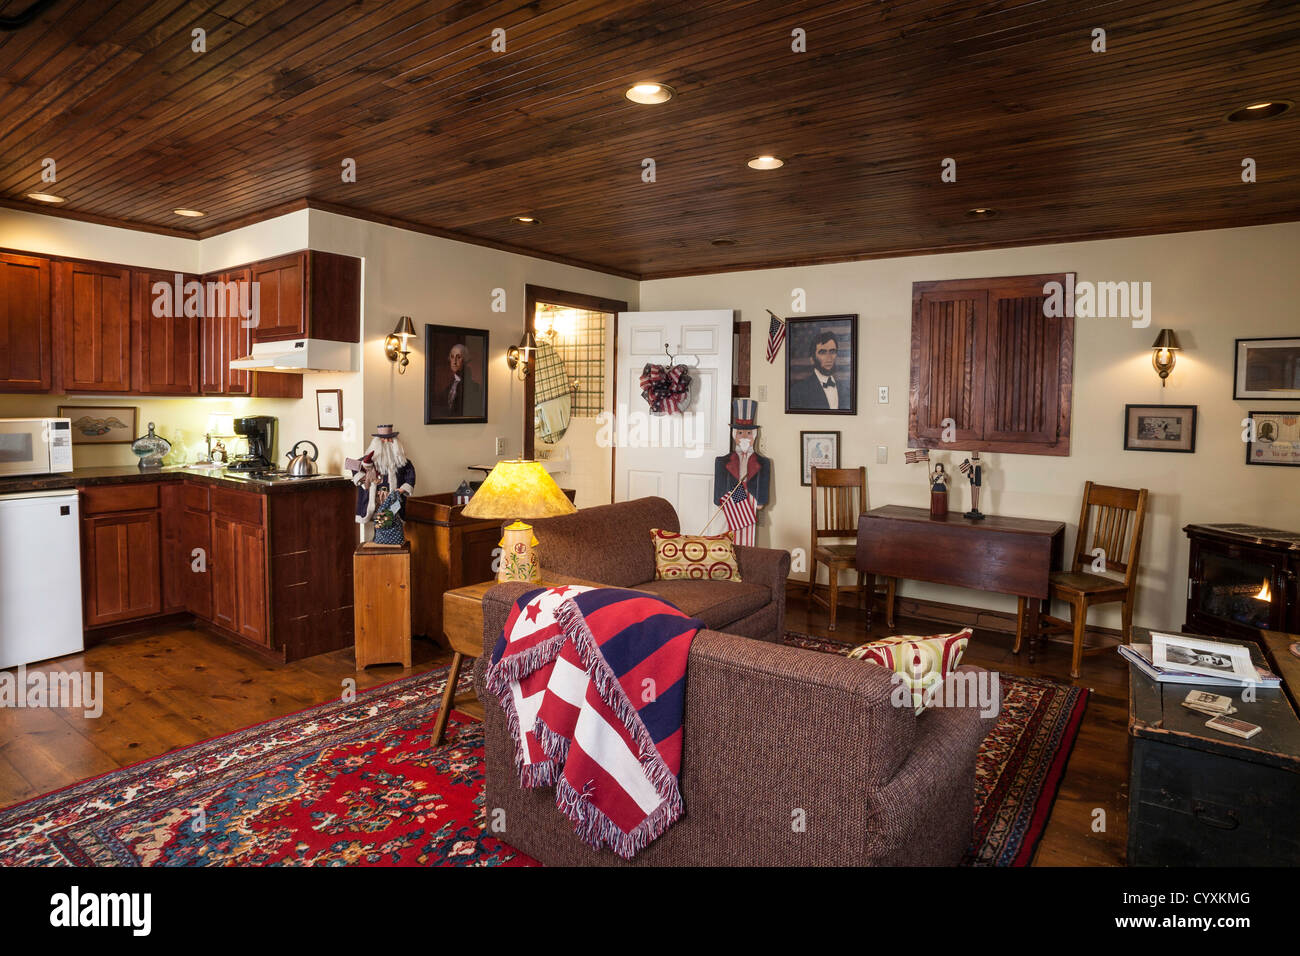 Early American Decor High Resolution Stock Photography And Images Alamy